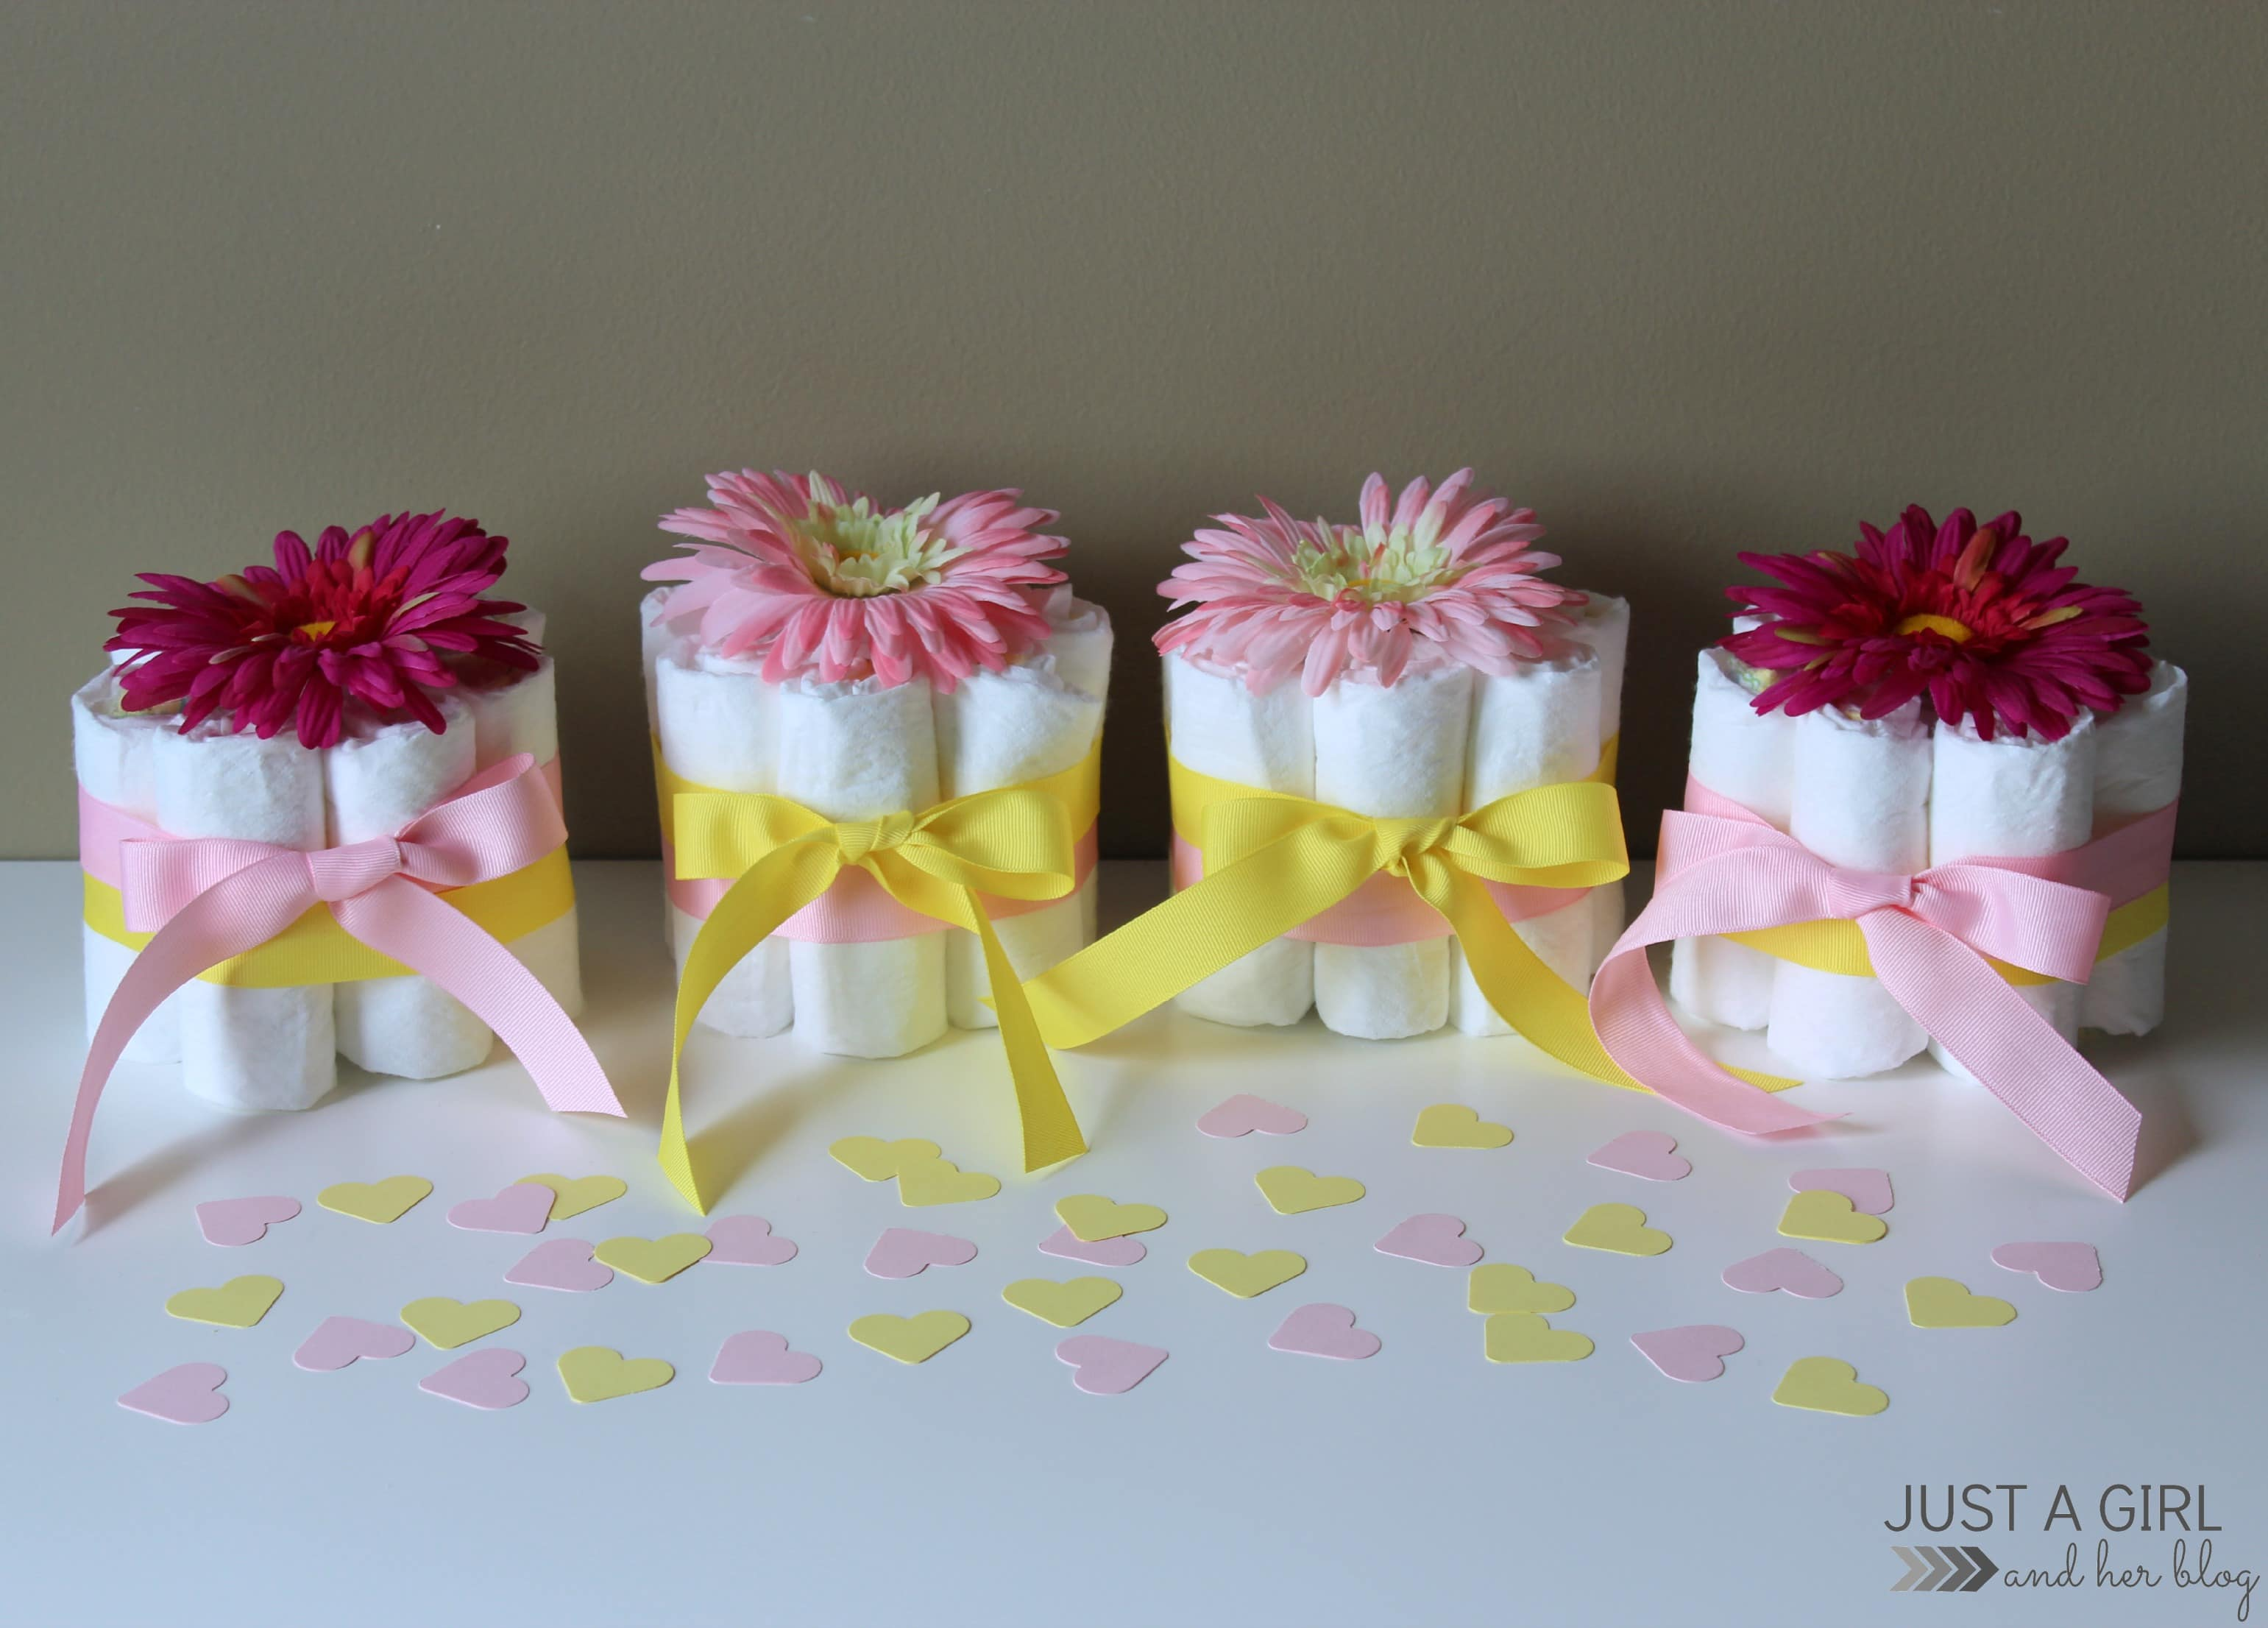 Sweet and simple baby shower centerpieces just a girl and her blog sweet and simple baby shower centerpieces by just a girl and her blog amipublicfo Gallery